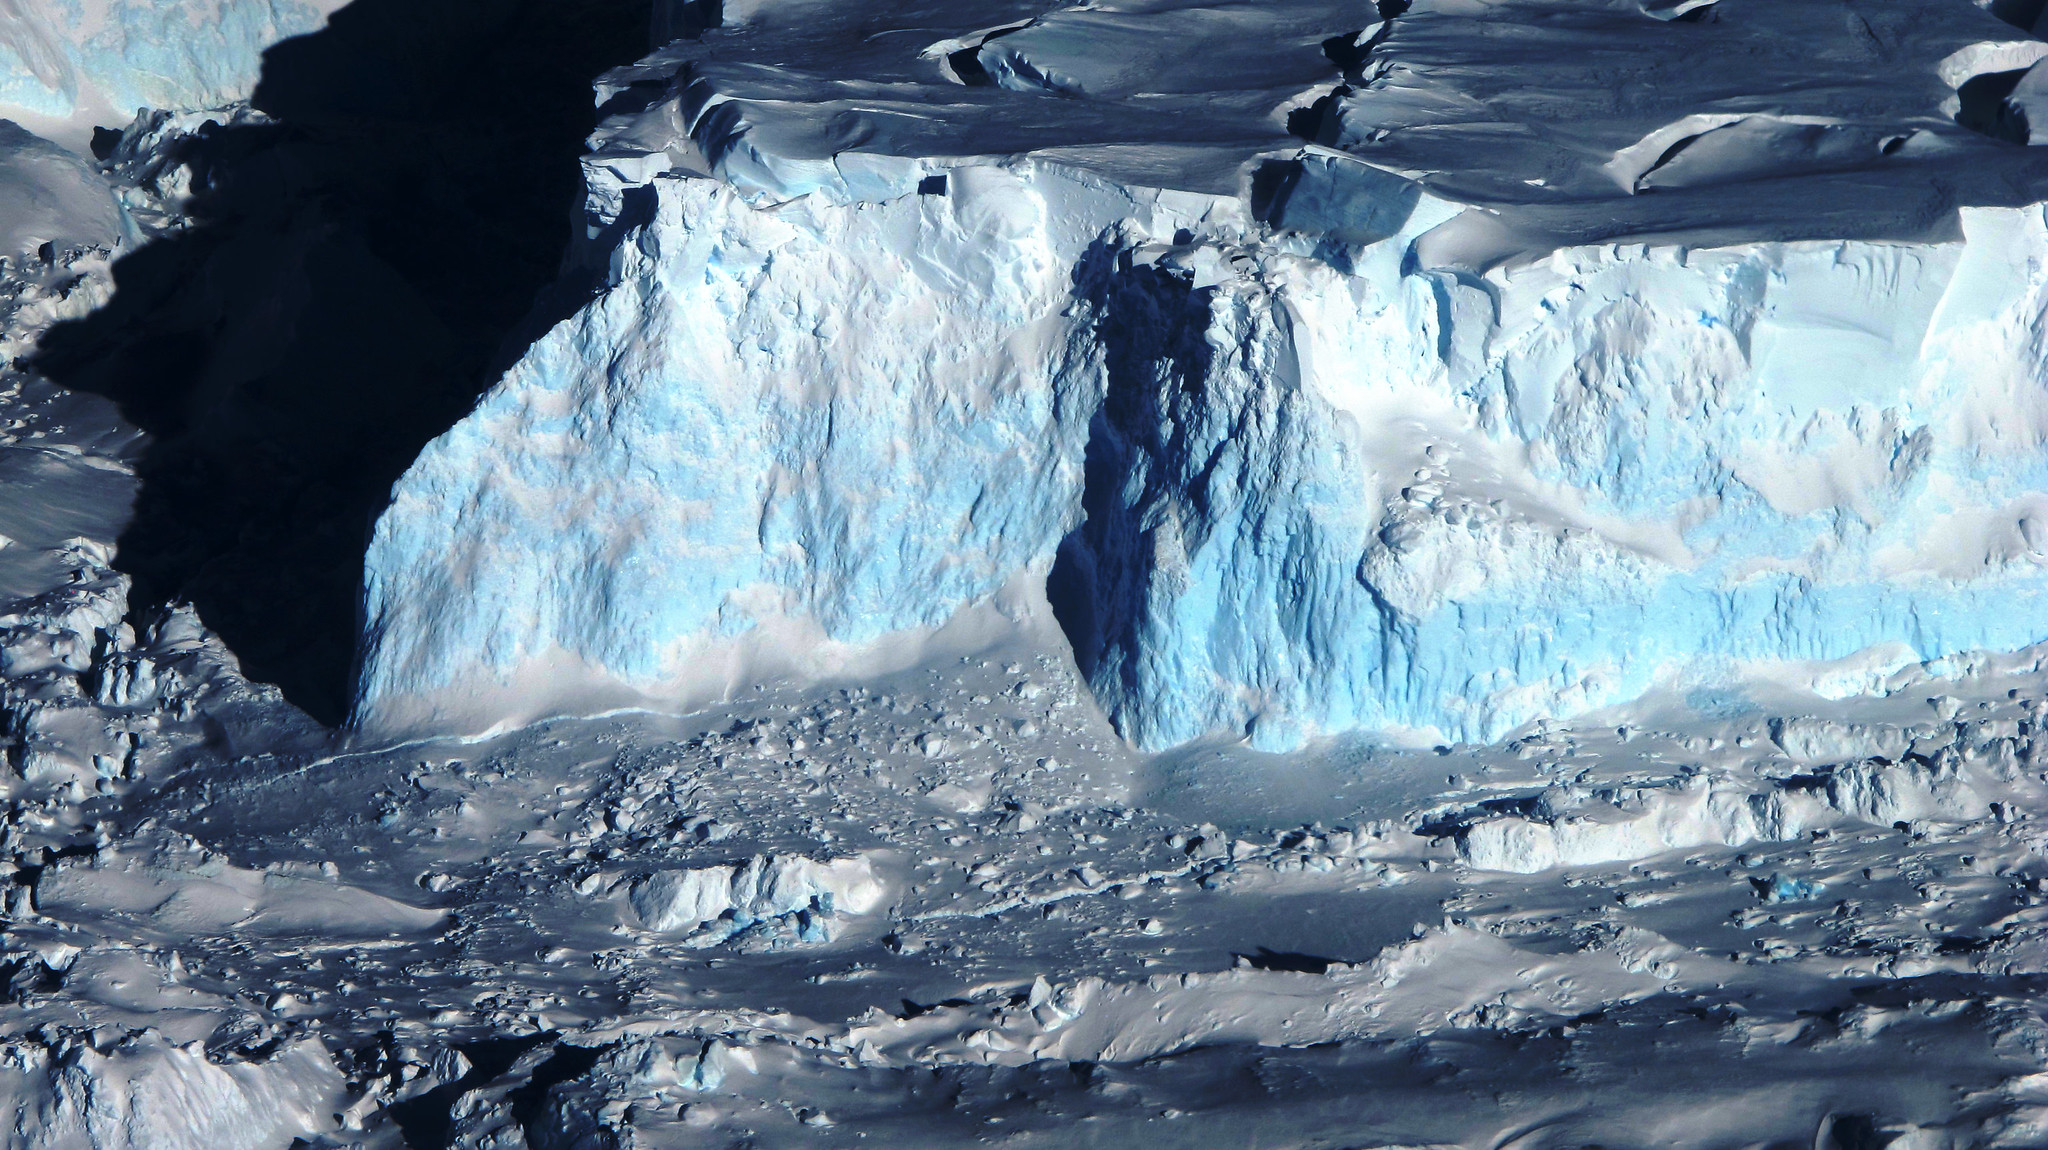 Thwaites Glacier in West Antarctica. Image Credit: NASA/James Yungel